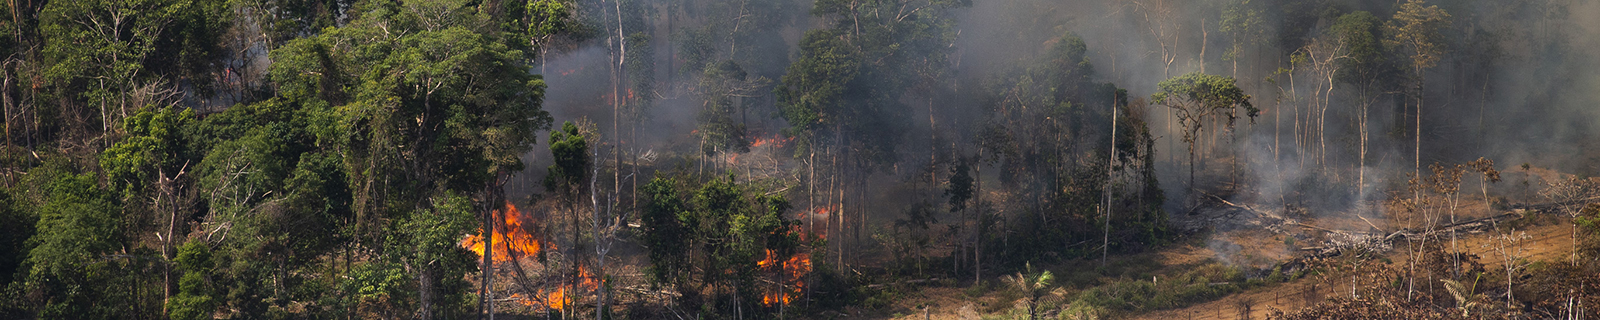 Amazon wildfires